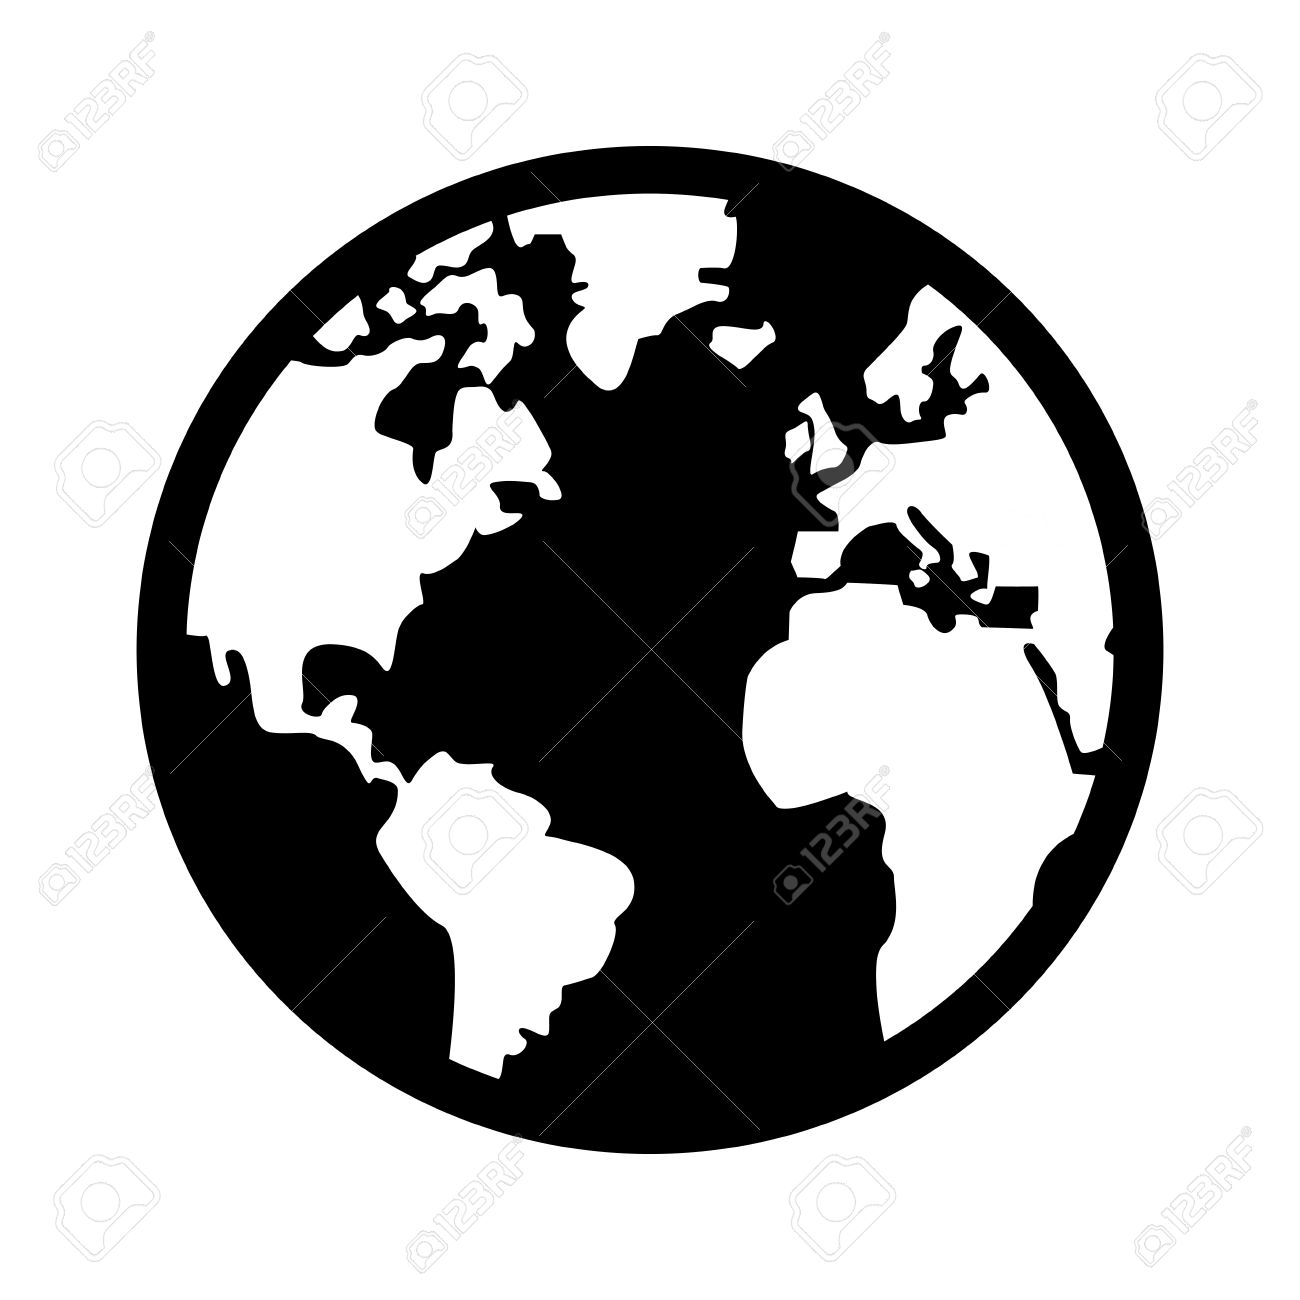 Elegant Black And White Earth Globe With Distinction Between Land And Sea Vector  Illustration Stock Vector